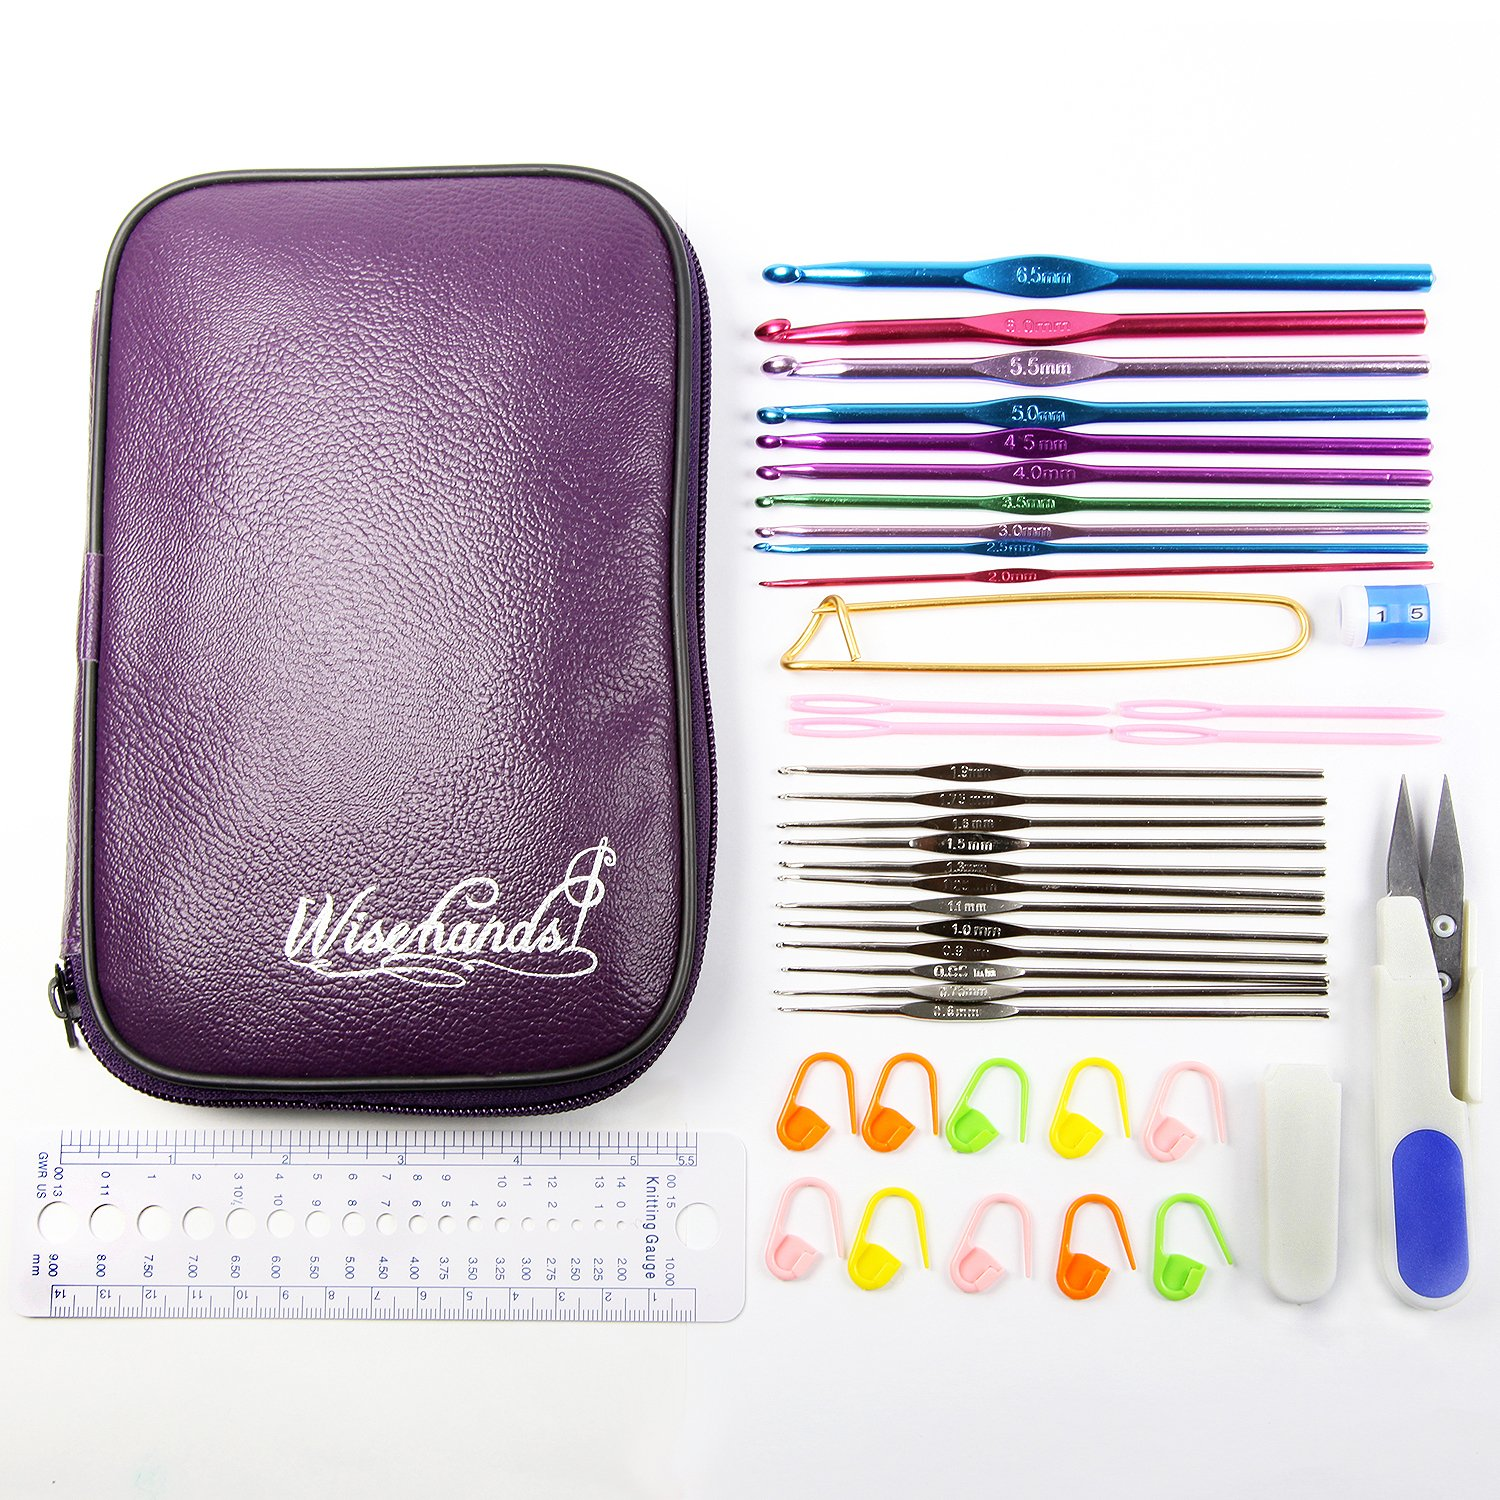 Wisehands® Crochet Set 22pcs Hooks in Purple Case Sewing Kits Complete with Scissors, Stitch Markers, Gauge Measure, Yarn Needles, 4.5″ Safety Pin, 2 Row Counters